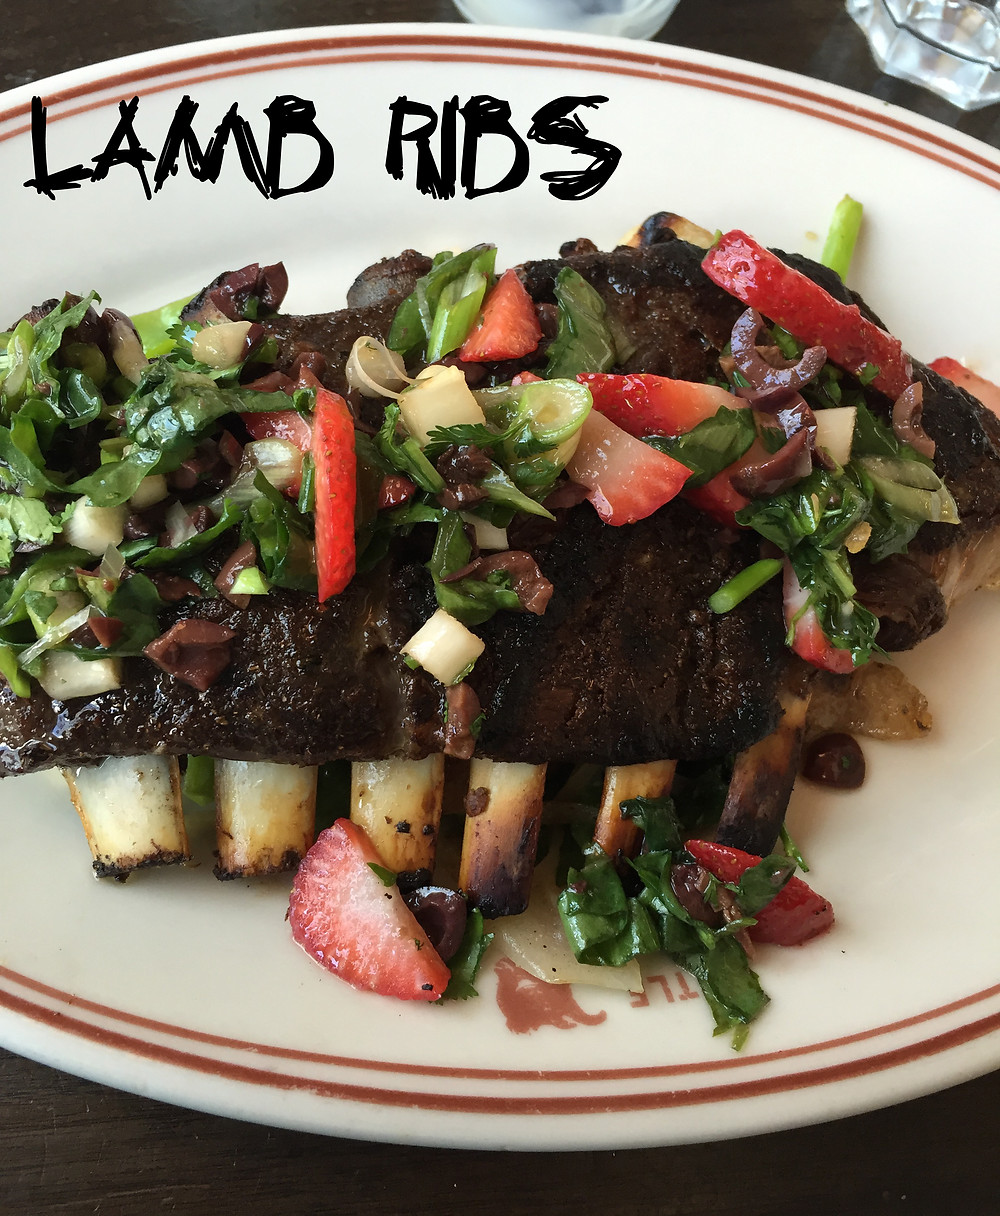 Lamb Ribs from The Little Goat Diner